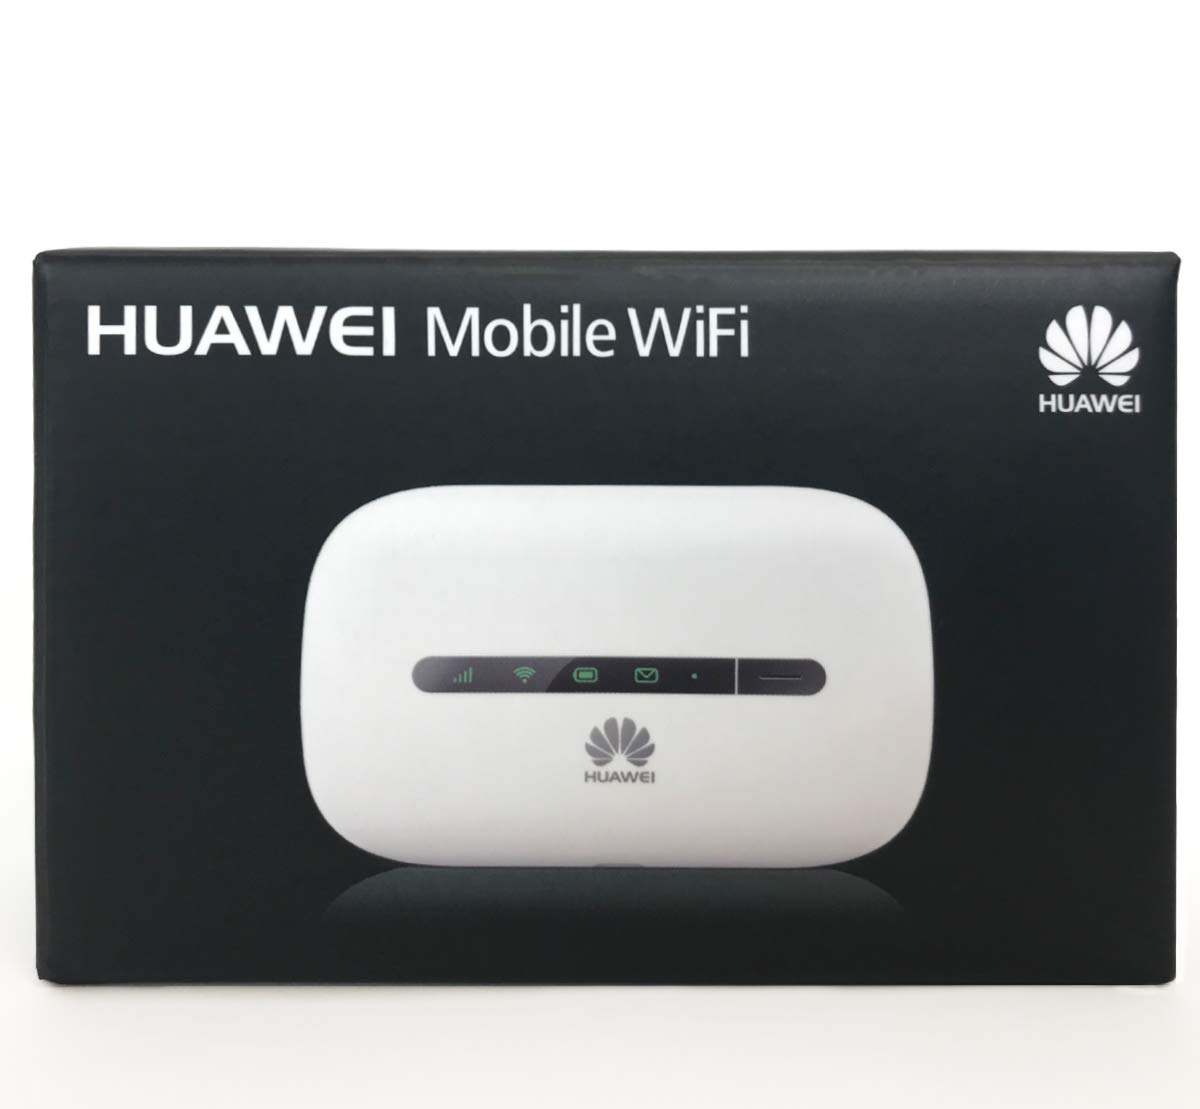 Huawei E5330Bs-2 3G Mobile WiFi Hotspot (3G in Europe, Asia, Middle East &  Africa), OEM/ORIGINAL from Huawei  White